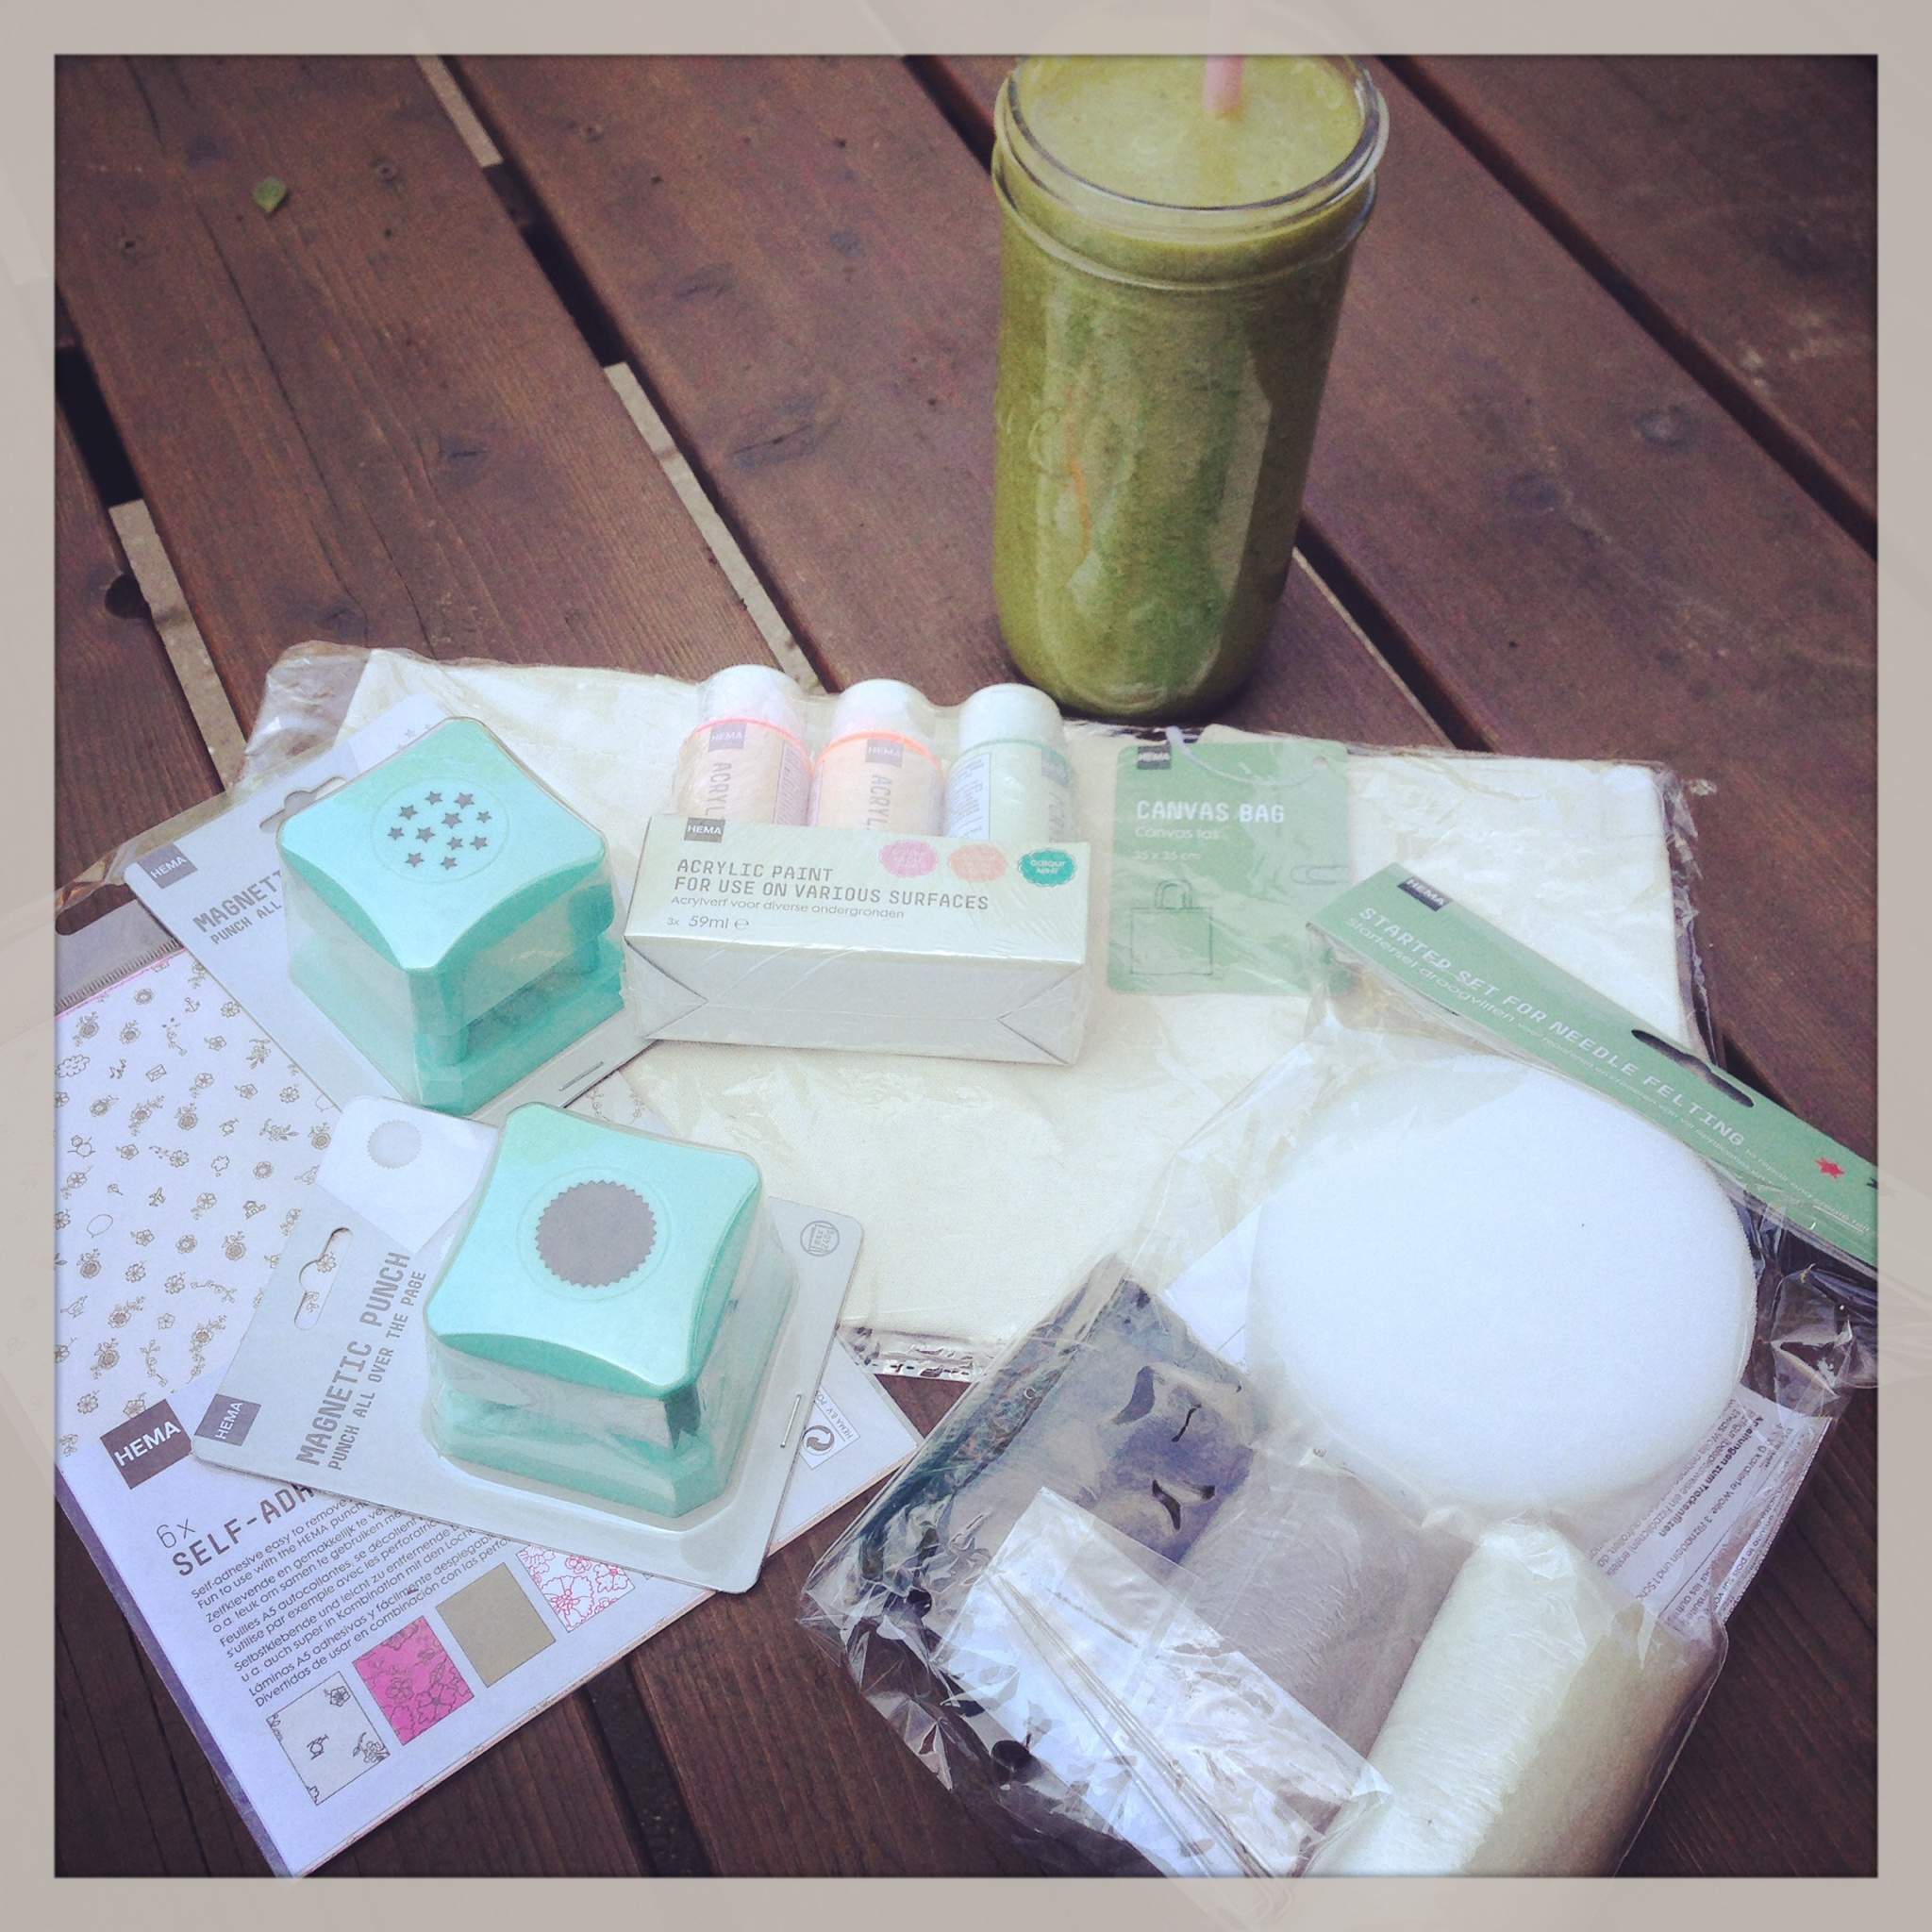 Astrid's mini haul from the HEMA. Ready to start crafting!